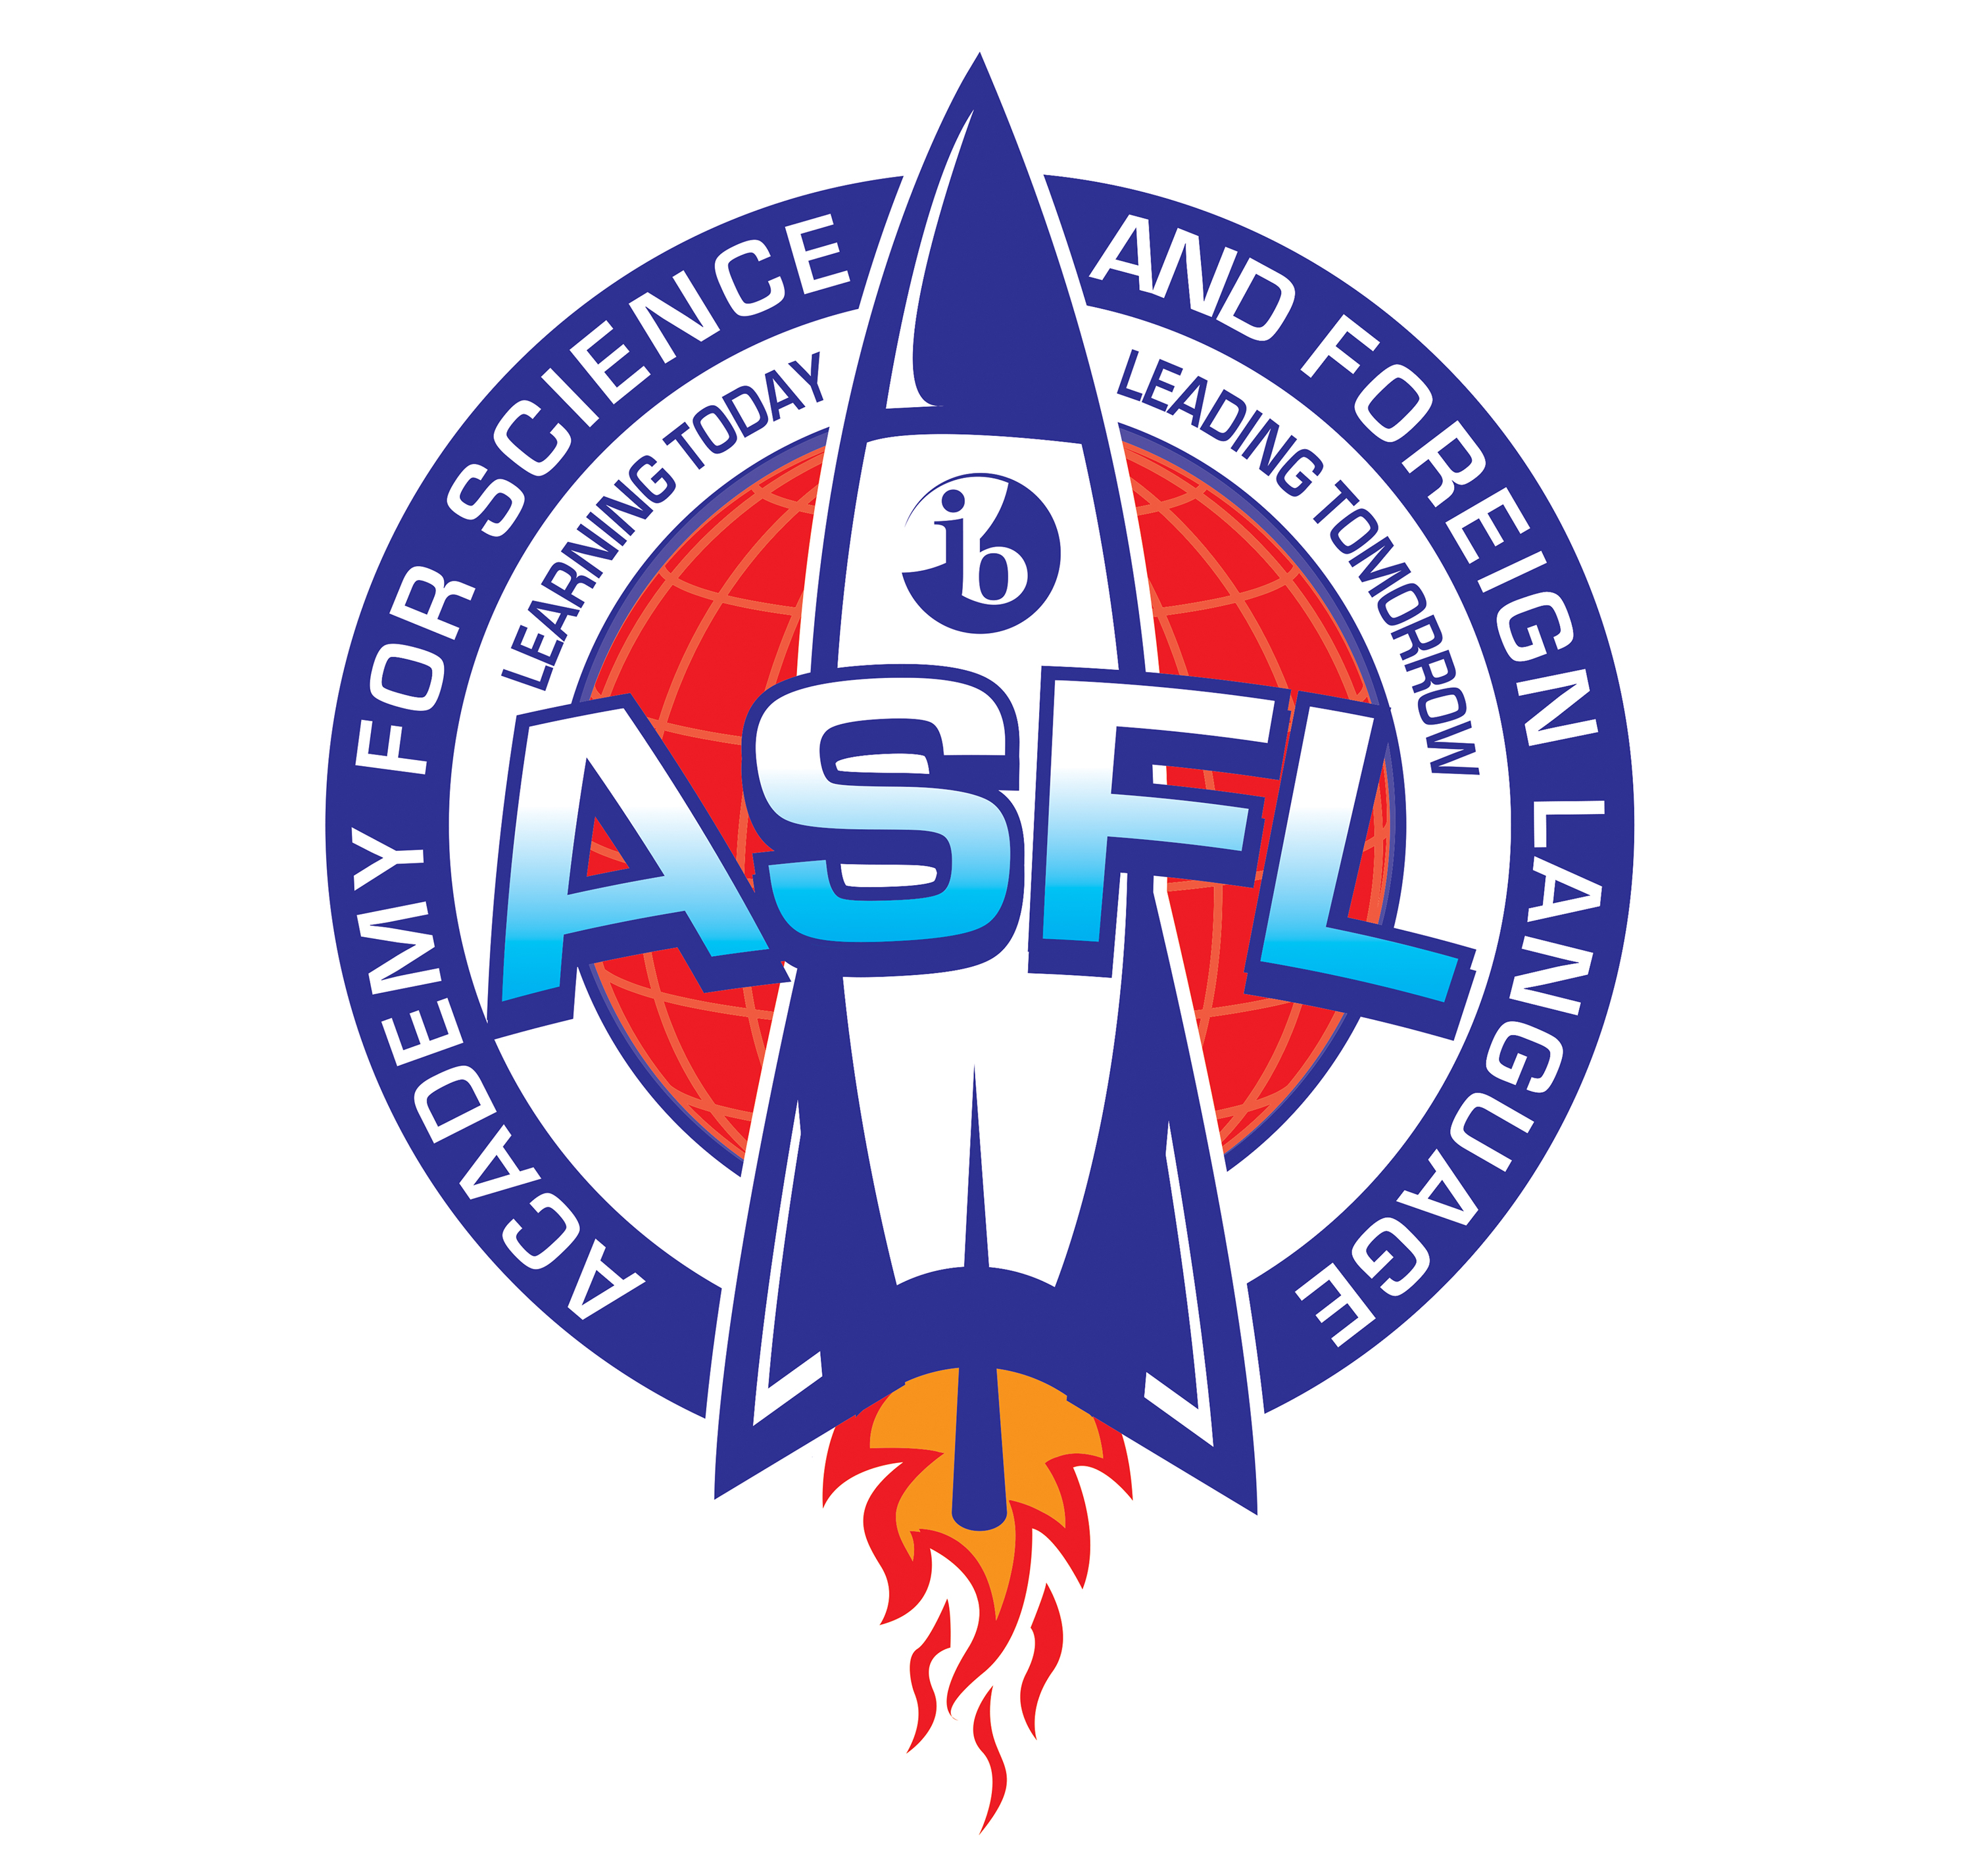 Academy for Science and Foreign Language Rocket Logo, Learning Today, Leading Tomorrow